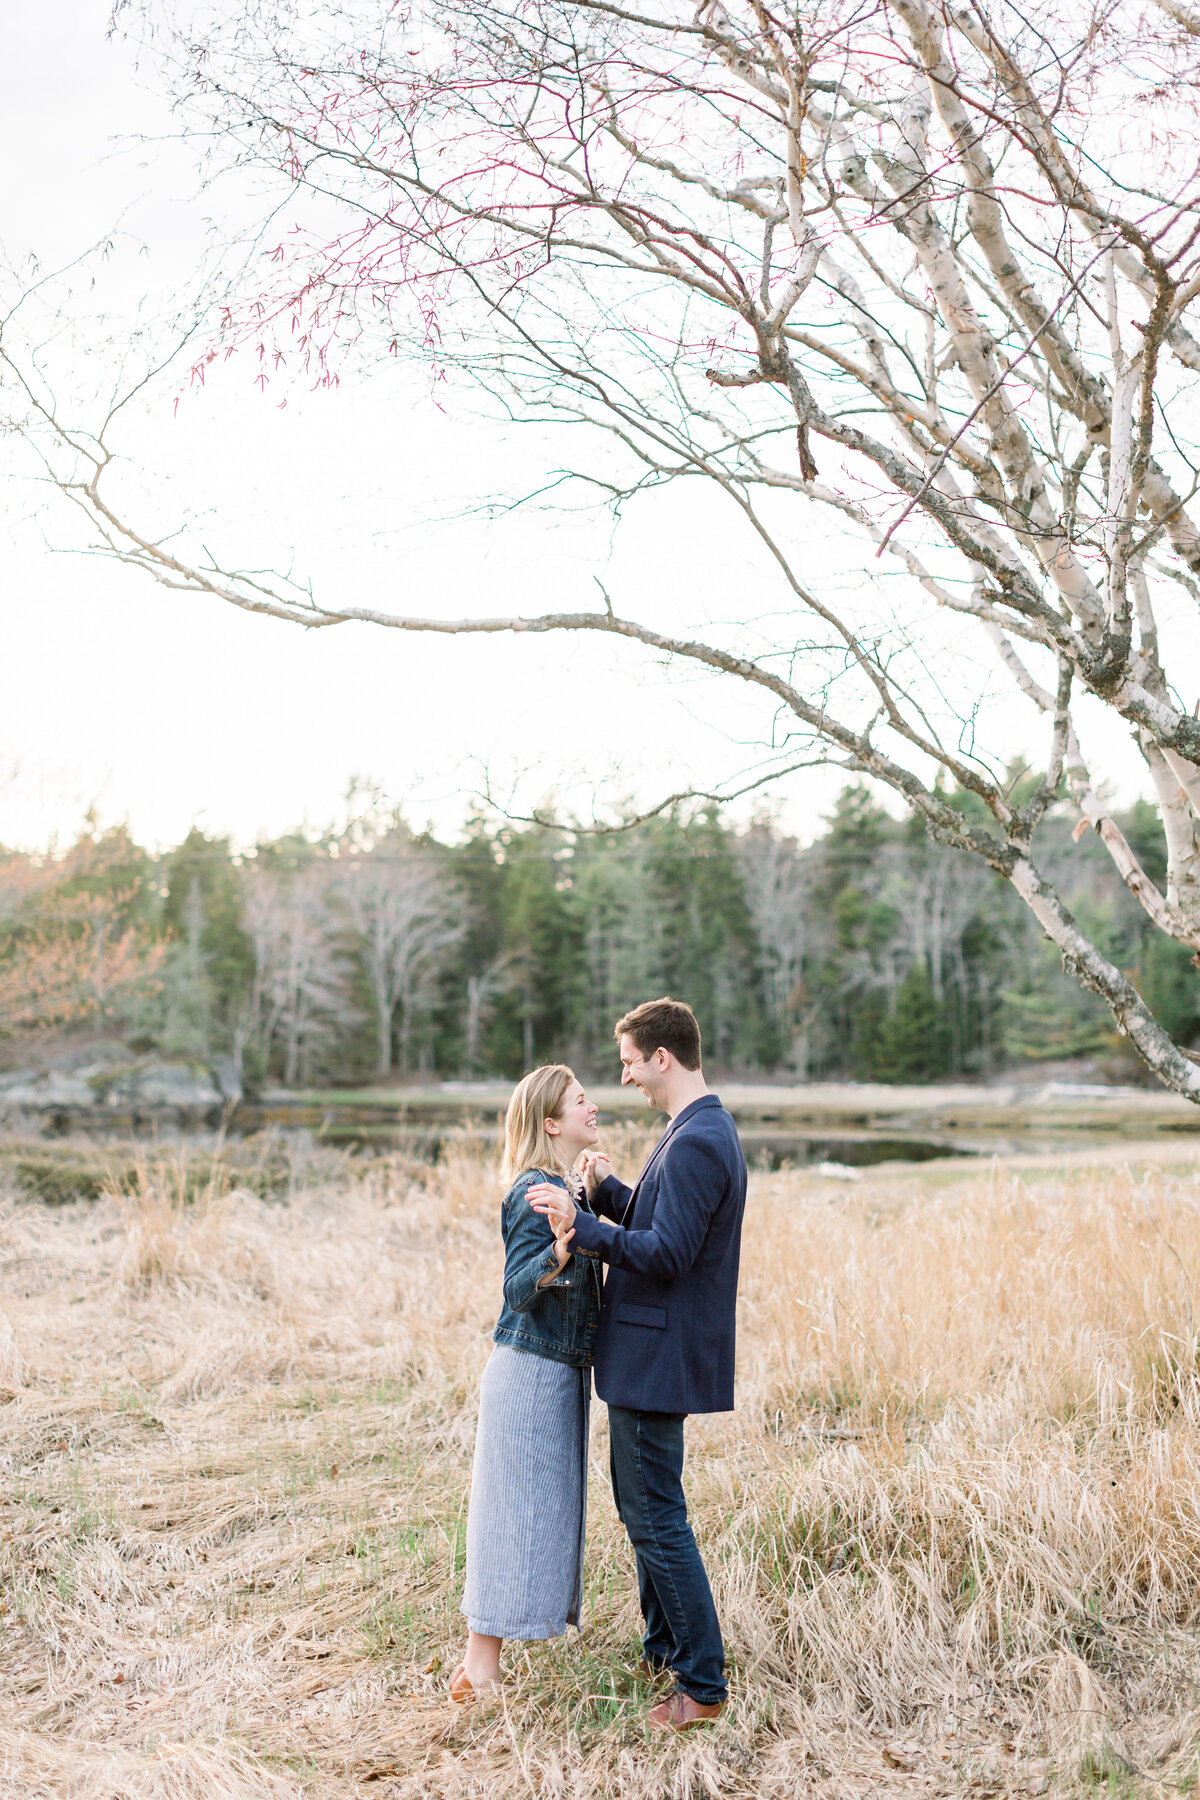 Rachel Buckley Weddings Photography Maine Wedding Lifestyle Studio Joyful Timeless Imagery Natural Portraits Destination2